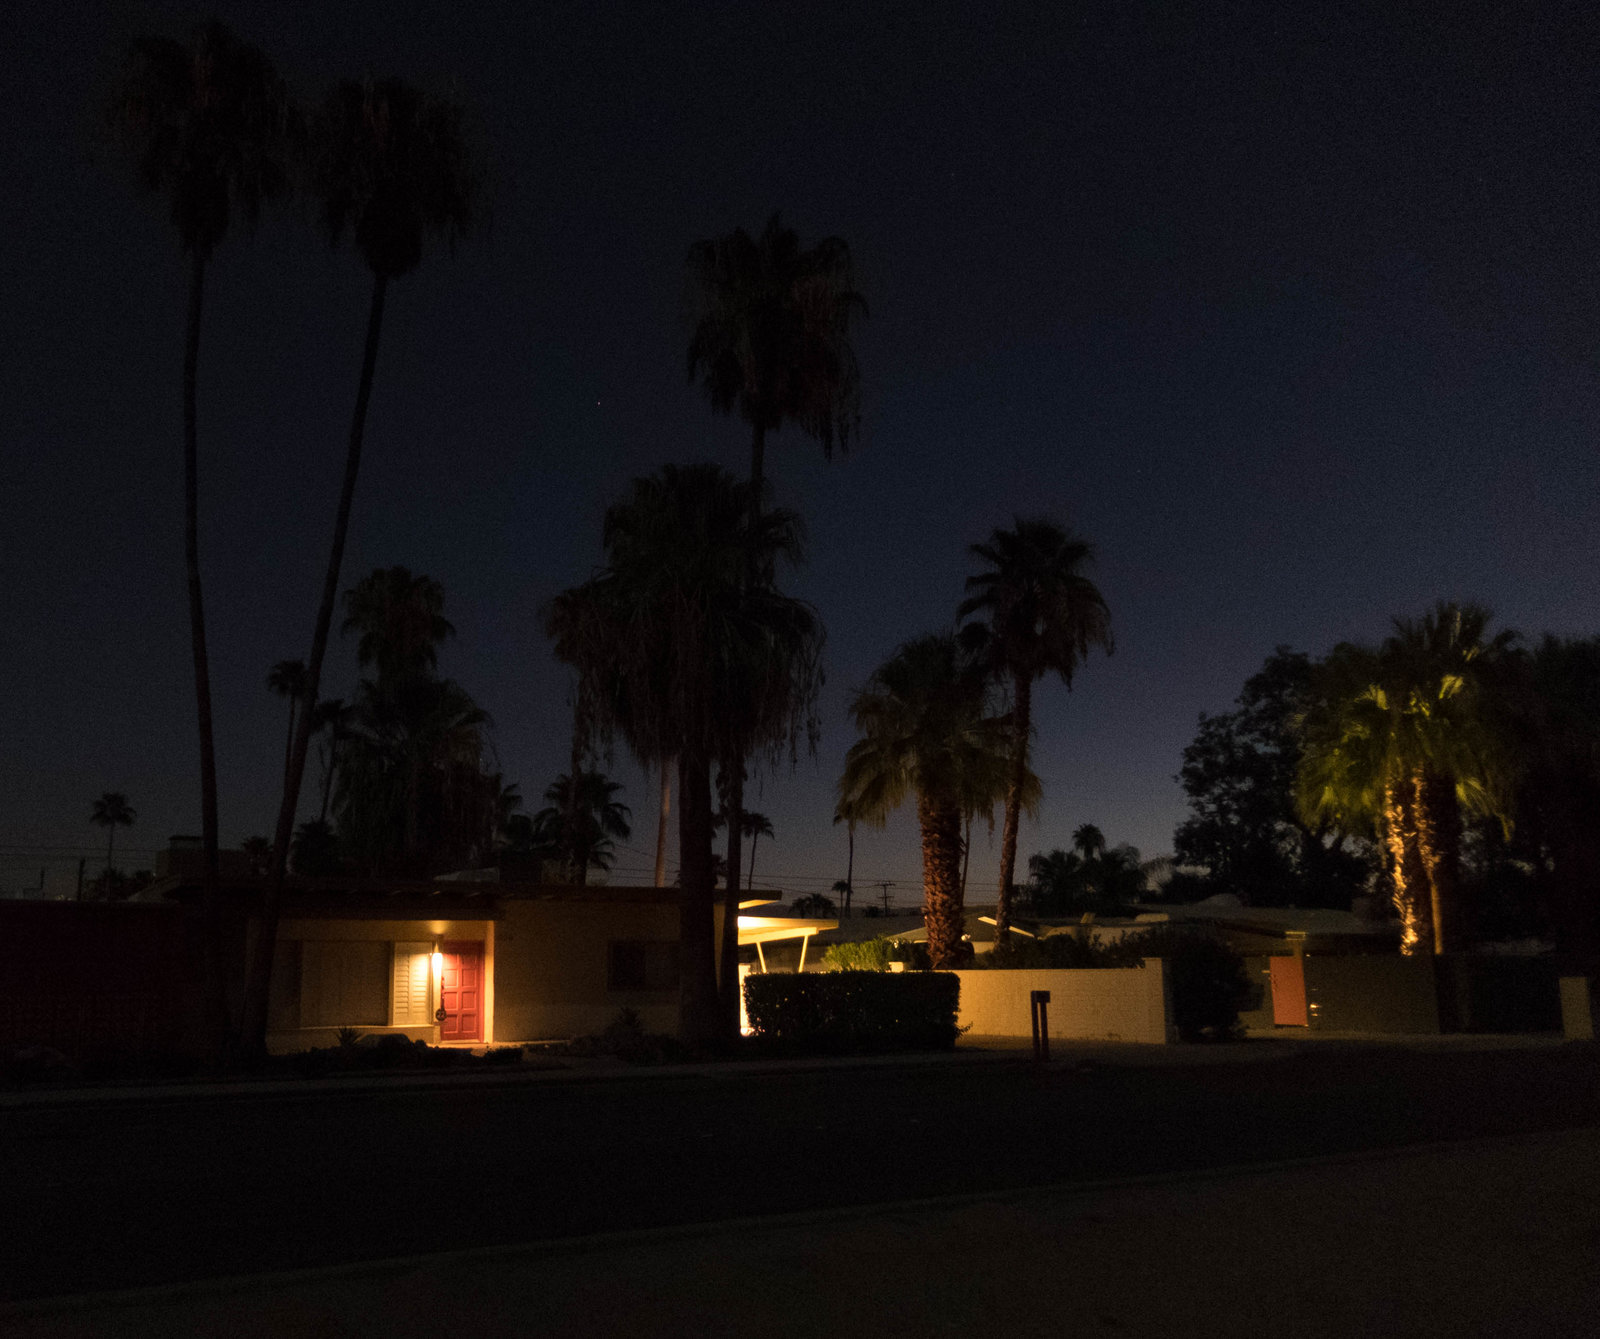 Palm_springs_night.jpg